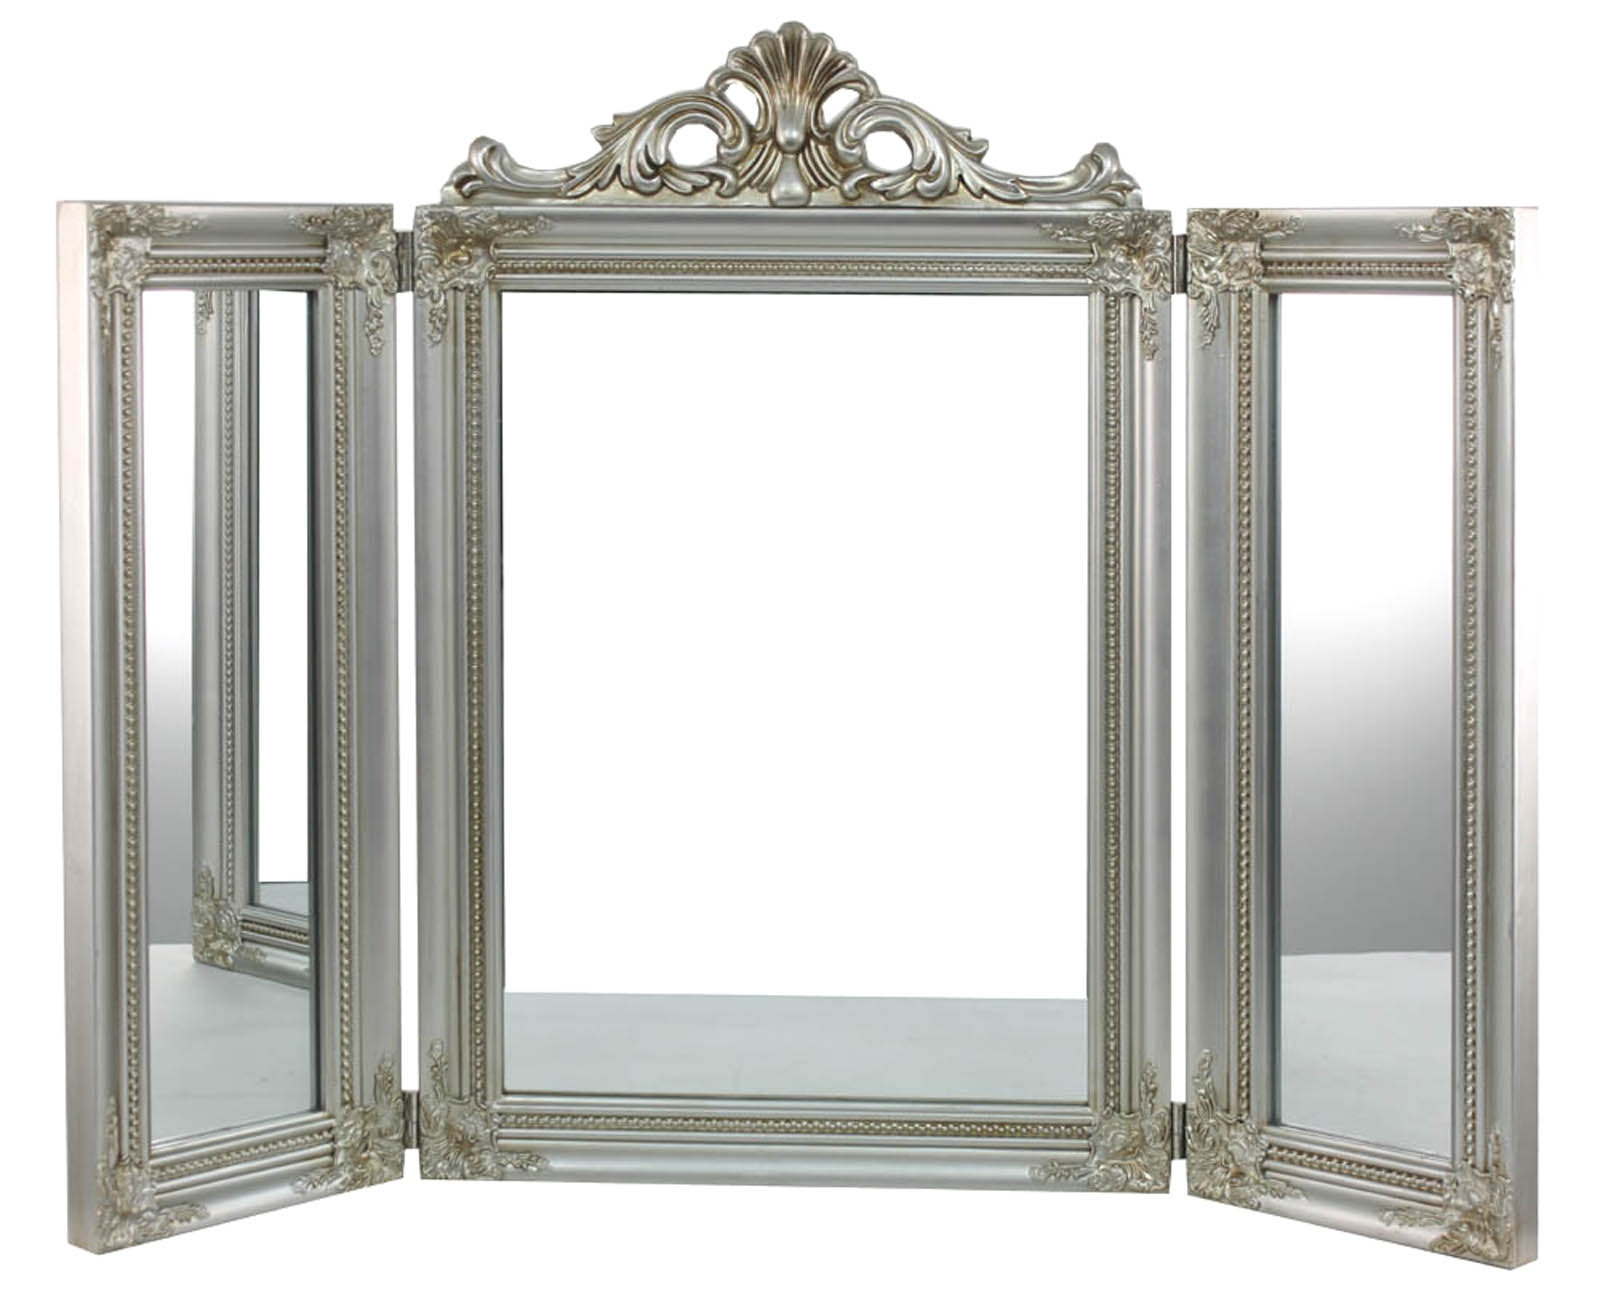 Ornate Silver Painted Triple Dressing Table Mirror Scarthingwell Intended For Ornate Dressing Table Mirror (Image 11 of 15)